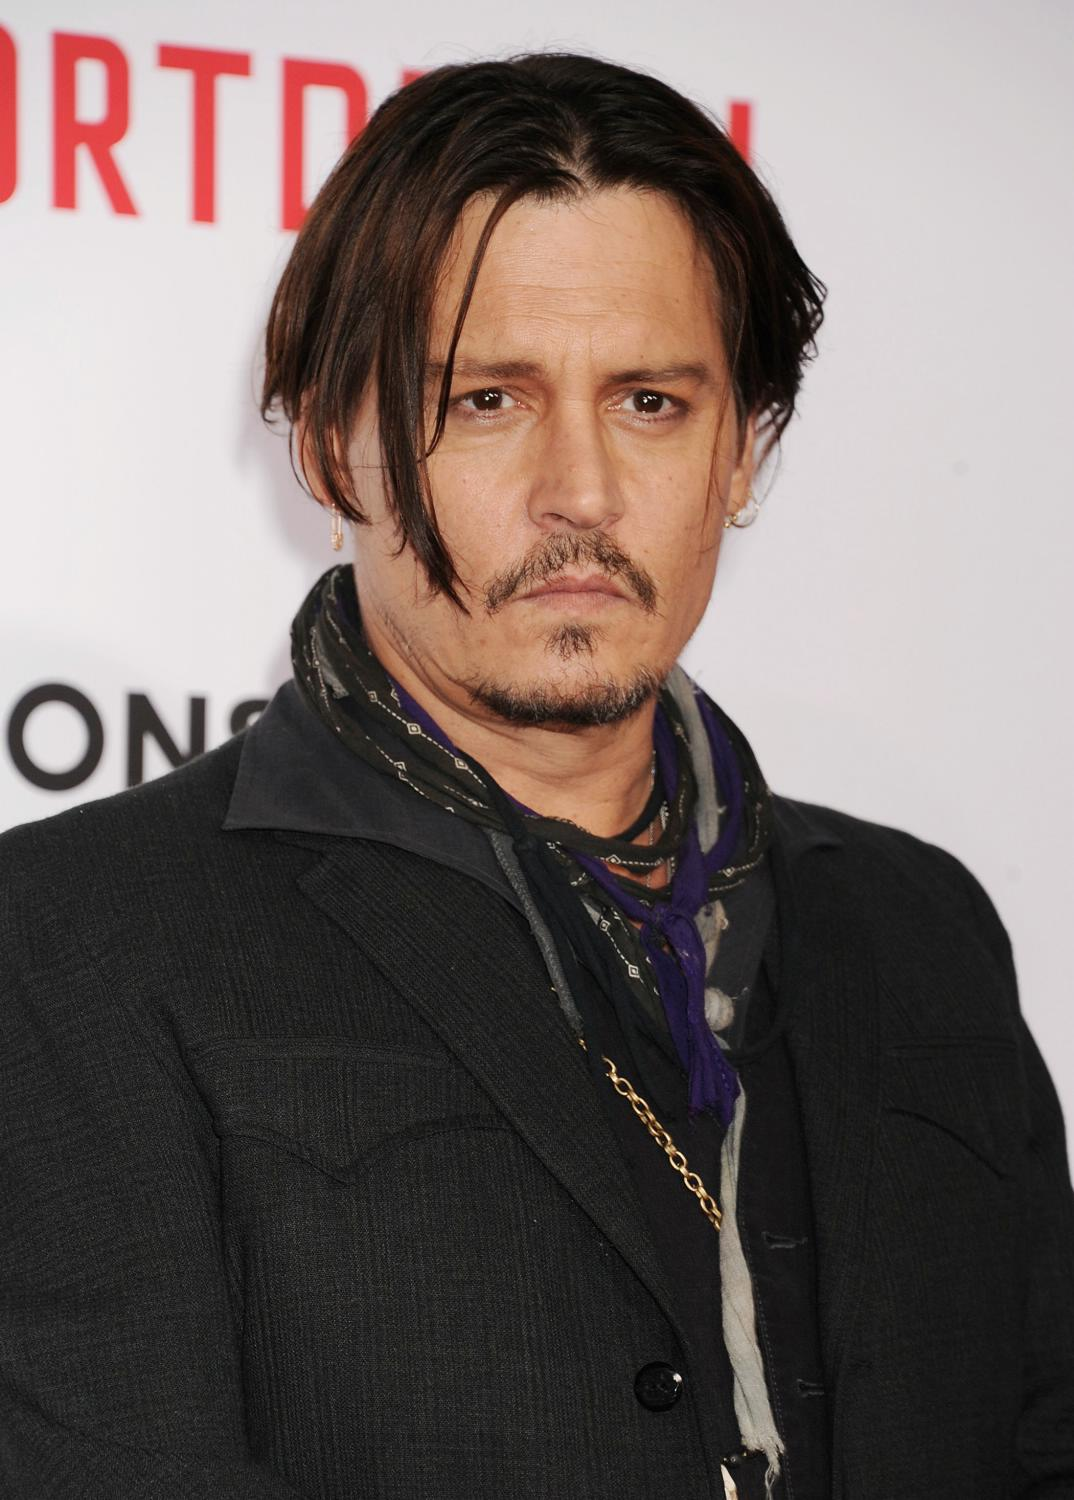 Johnny Depp photo #636602